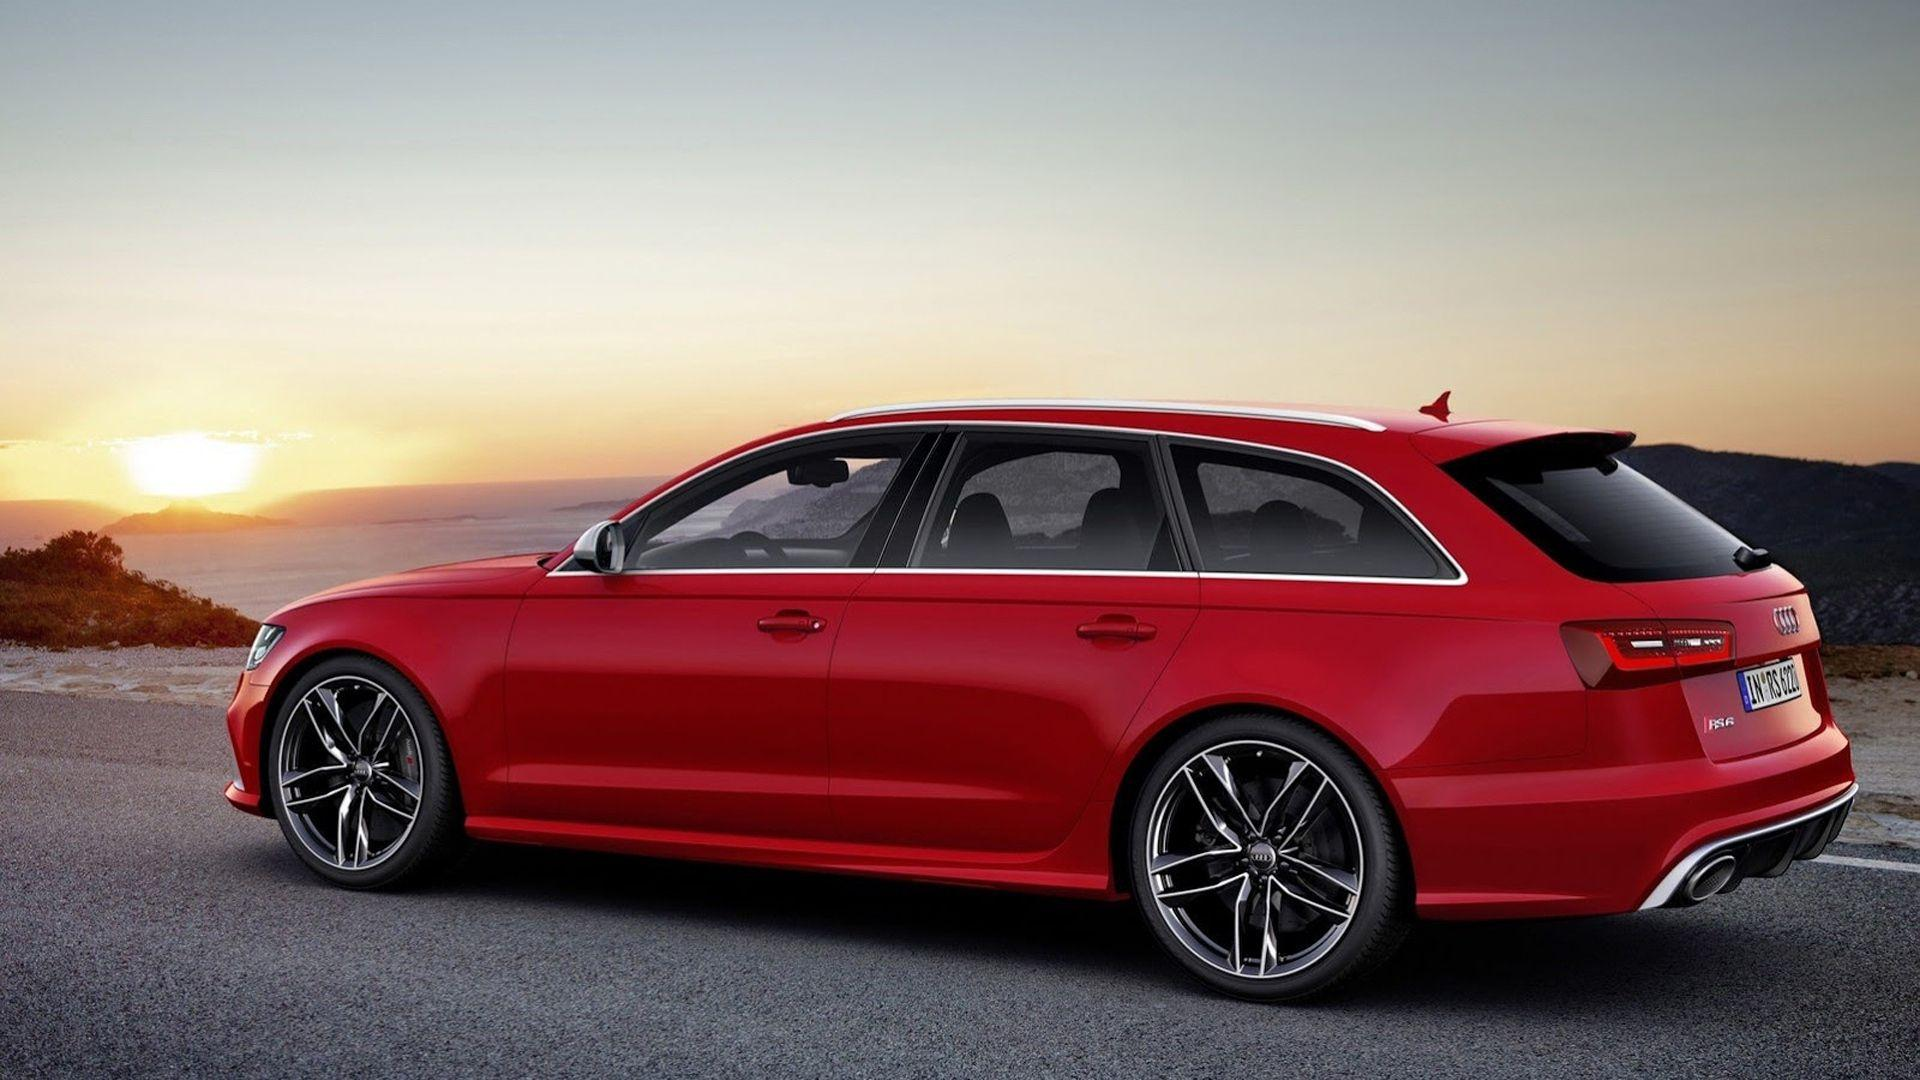 Download Wallpapers 1920x1080 Audi, V